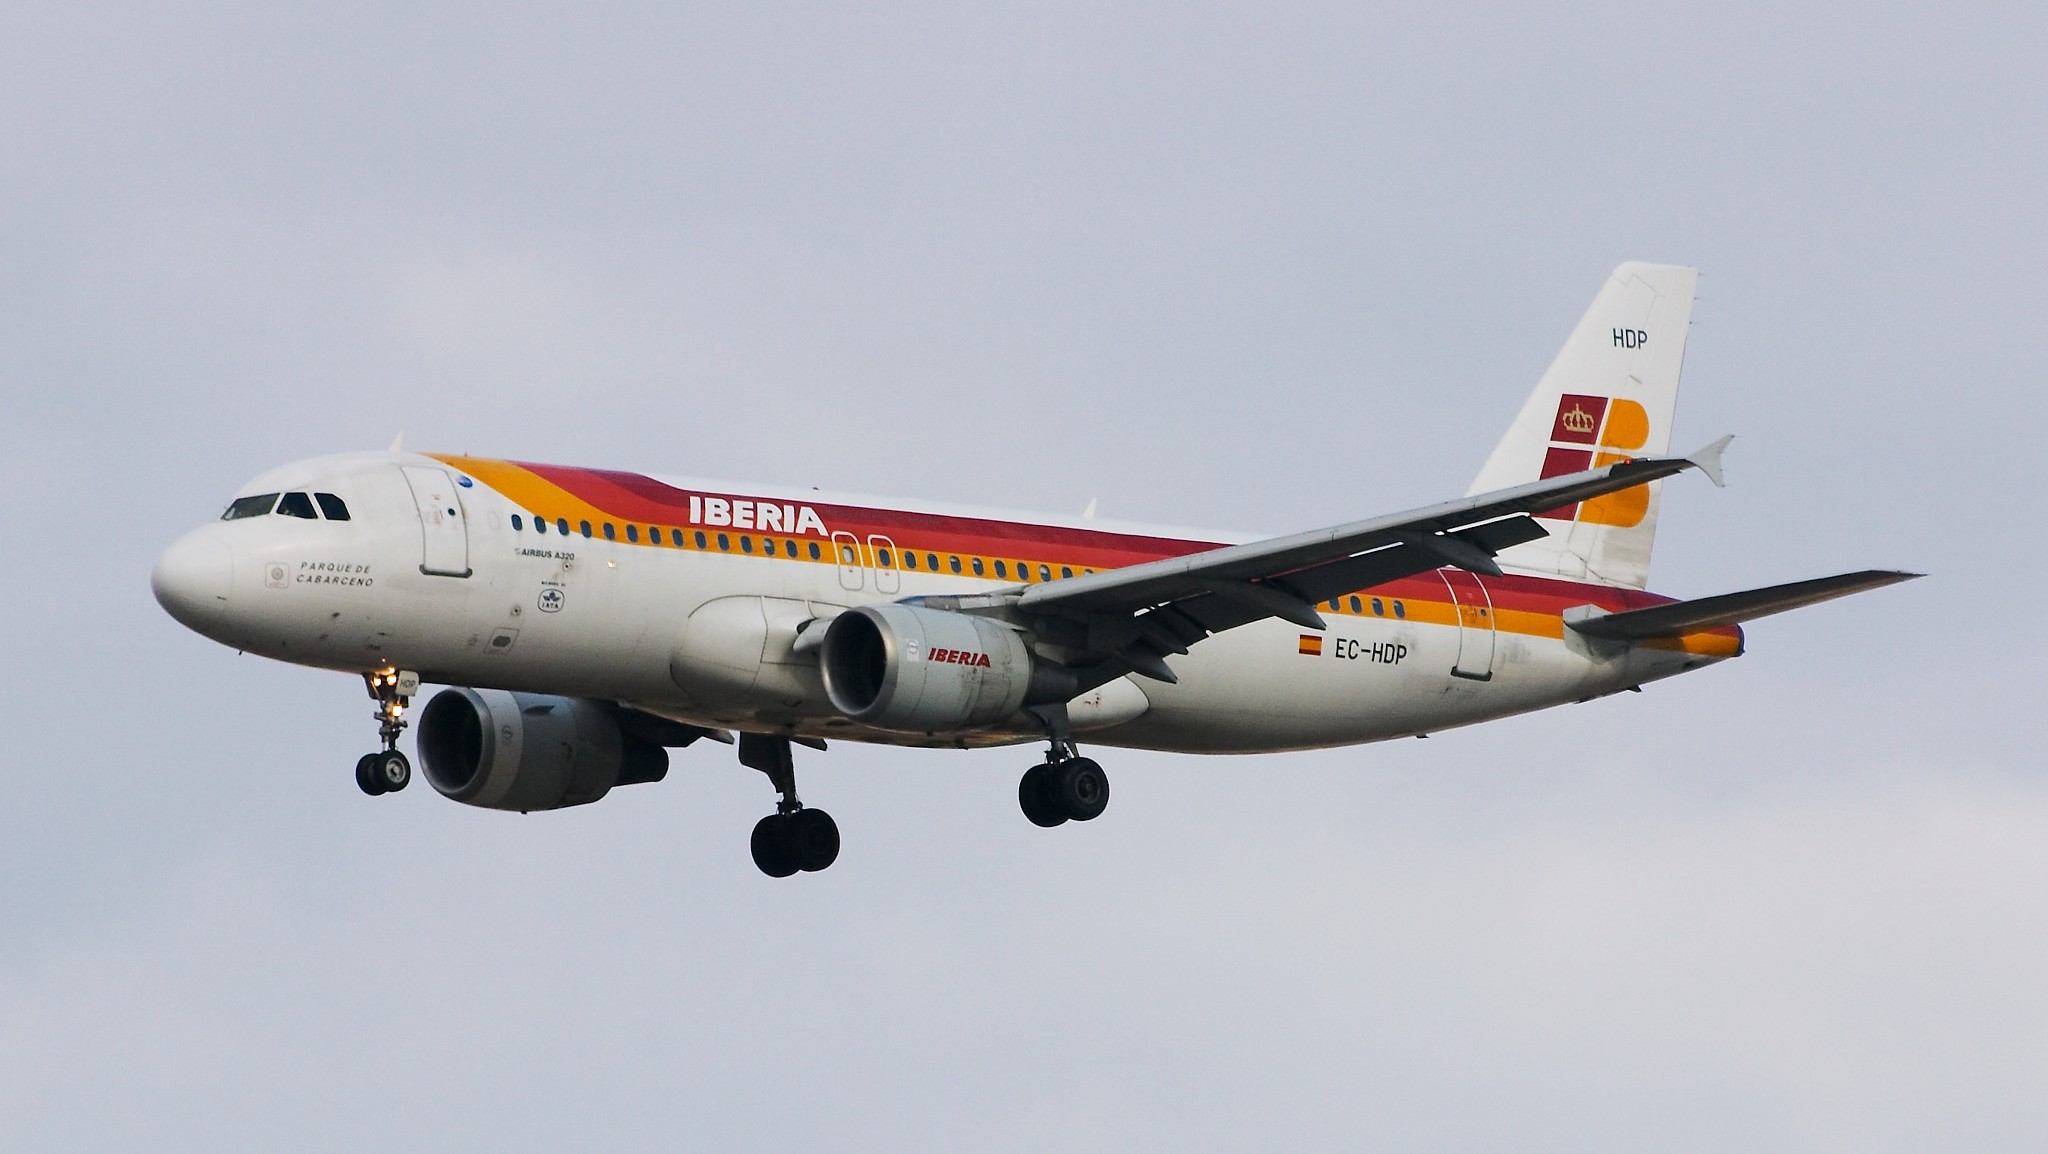 https://upload.wikimedia.org/wikipedia/commons/6/6f/Airbus_A320-214_-_Iberia_-_EC-HDP_-_LEMD_-_200503051639.jpg